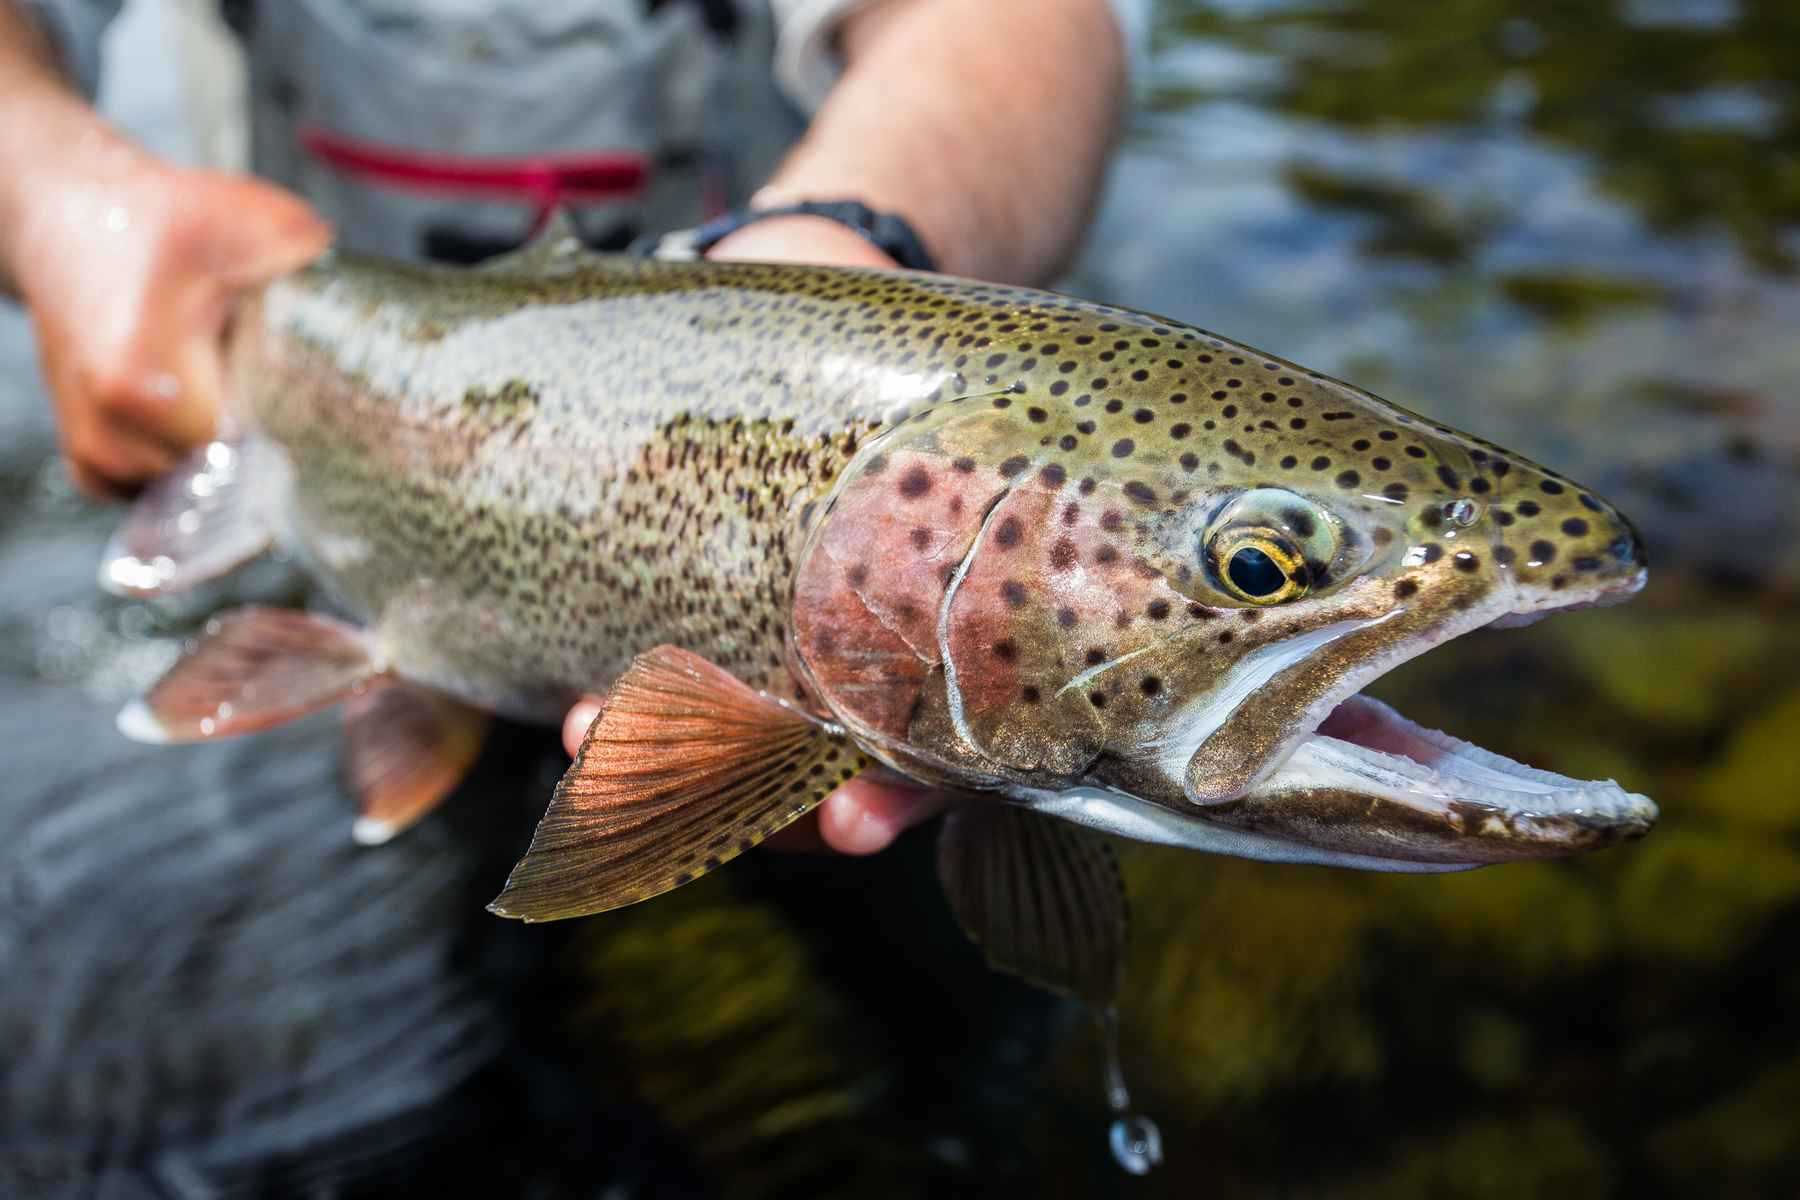 Atop the Angling Mountain: The Five Stages of Fly Fishing